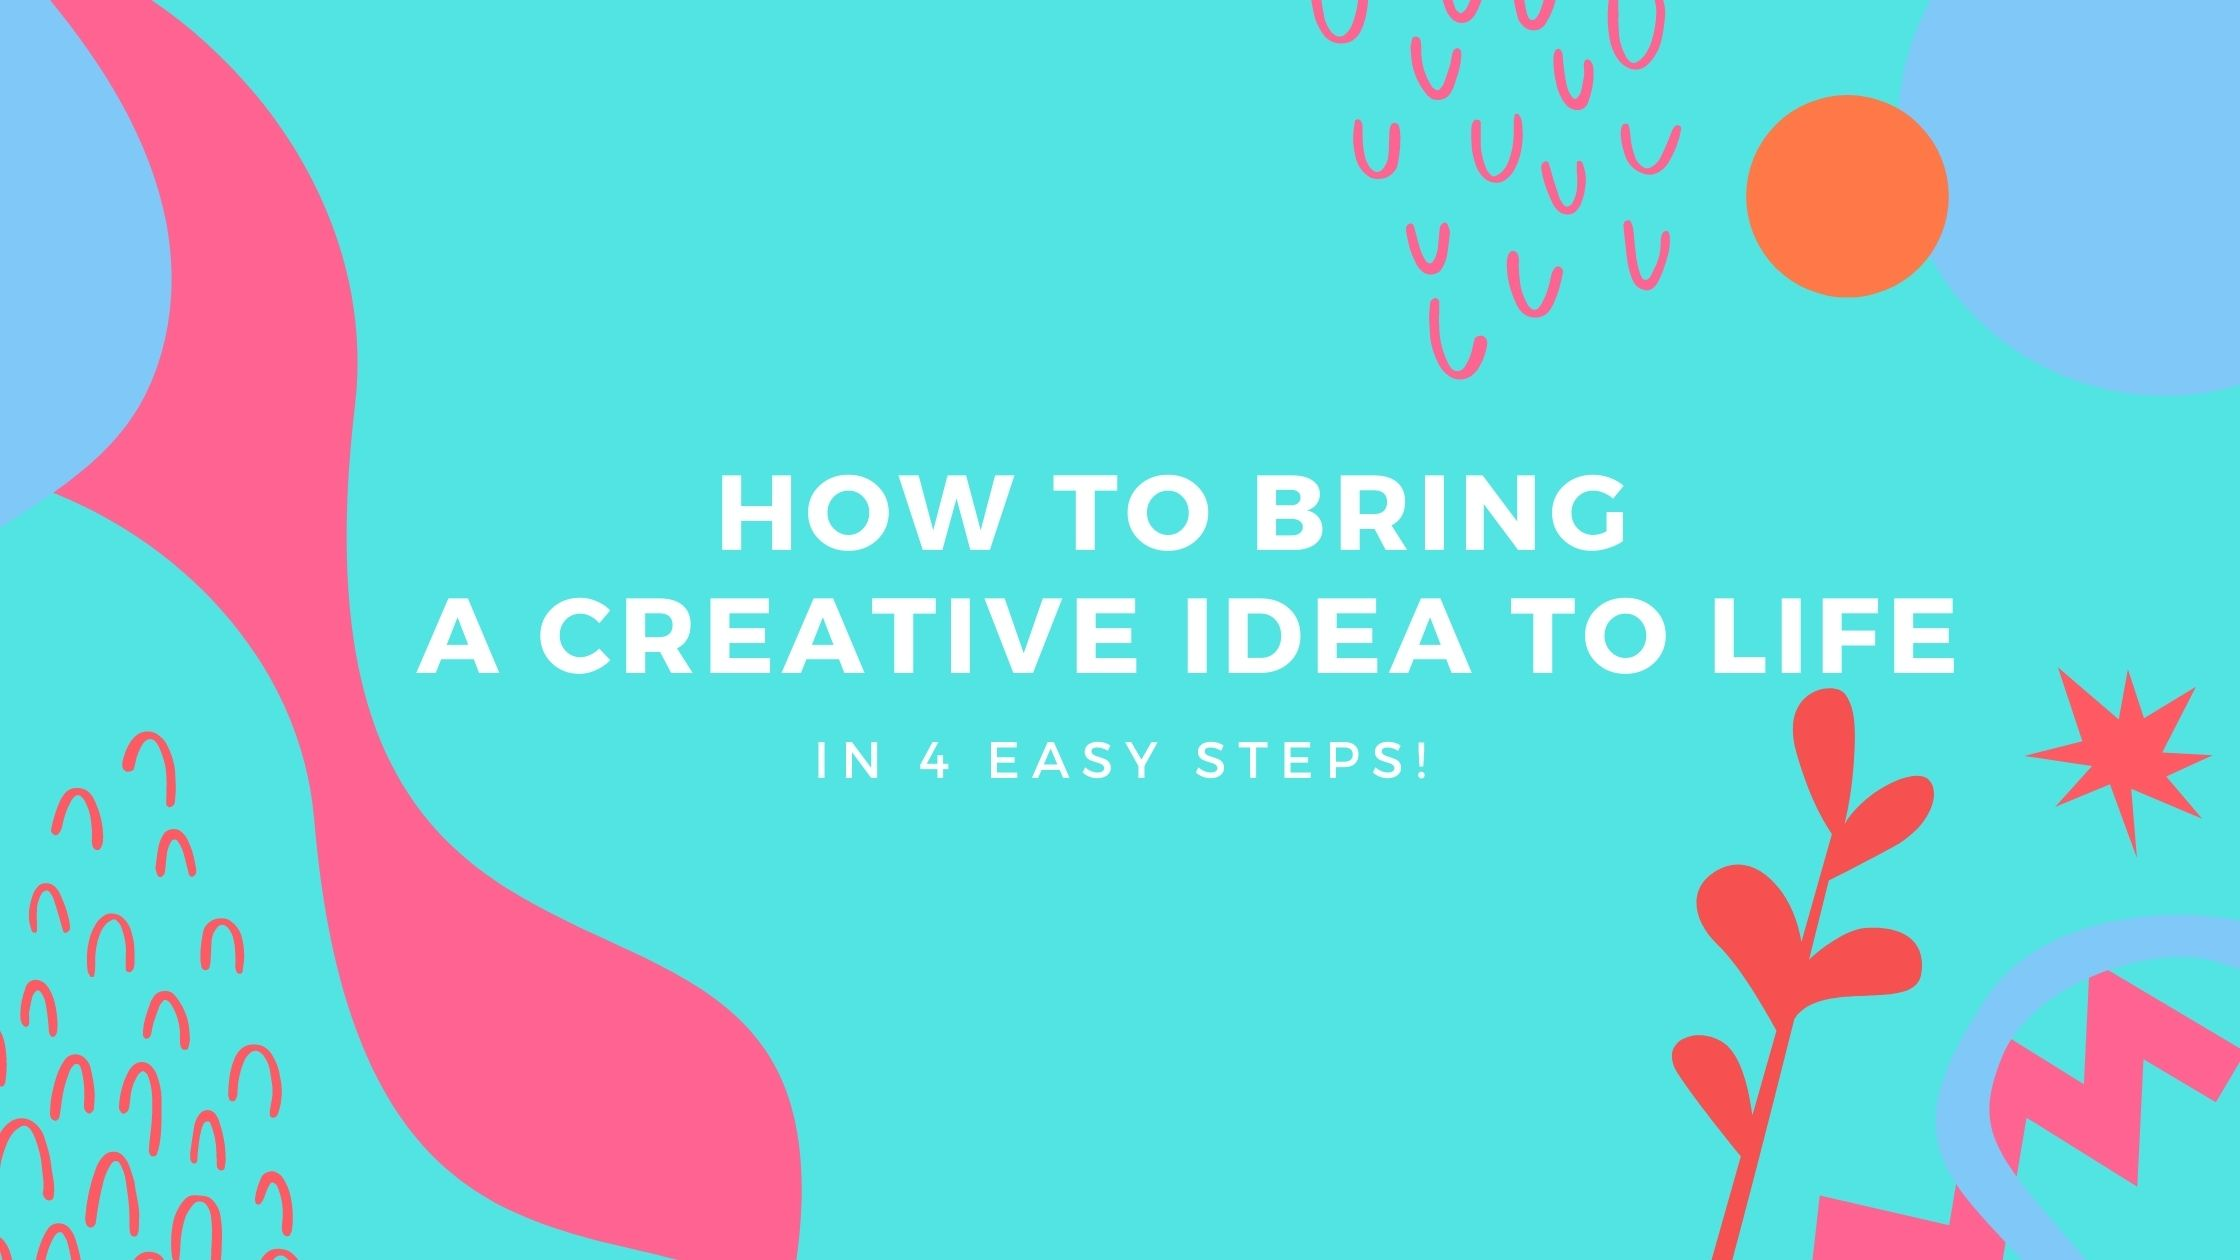 How To Bring a Creative Idea To Life